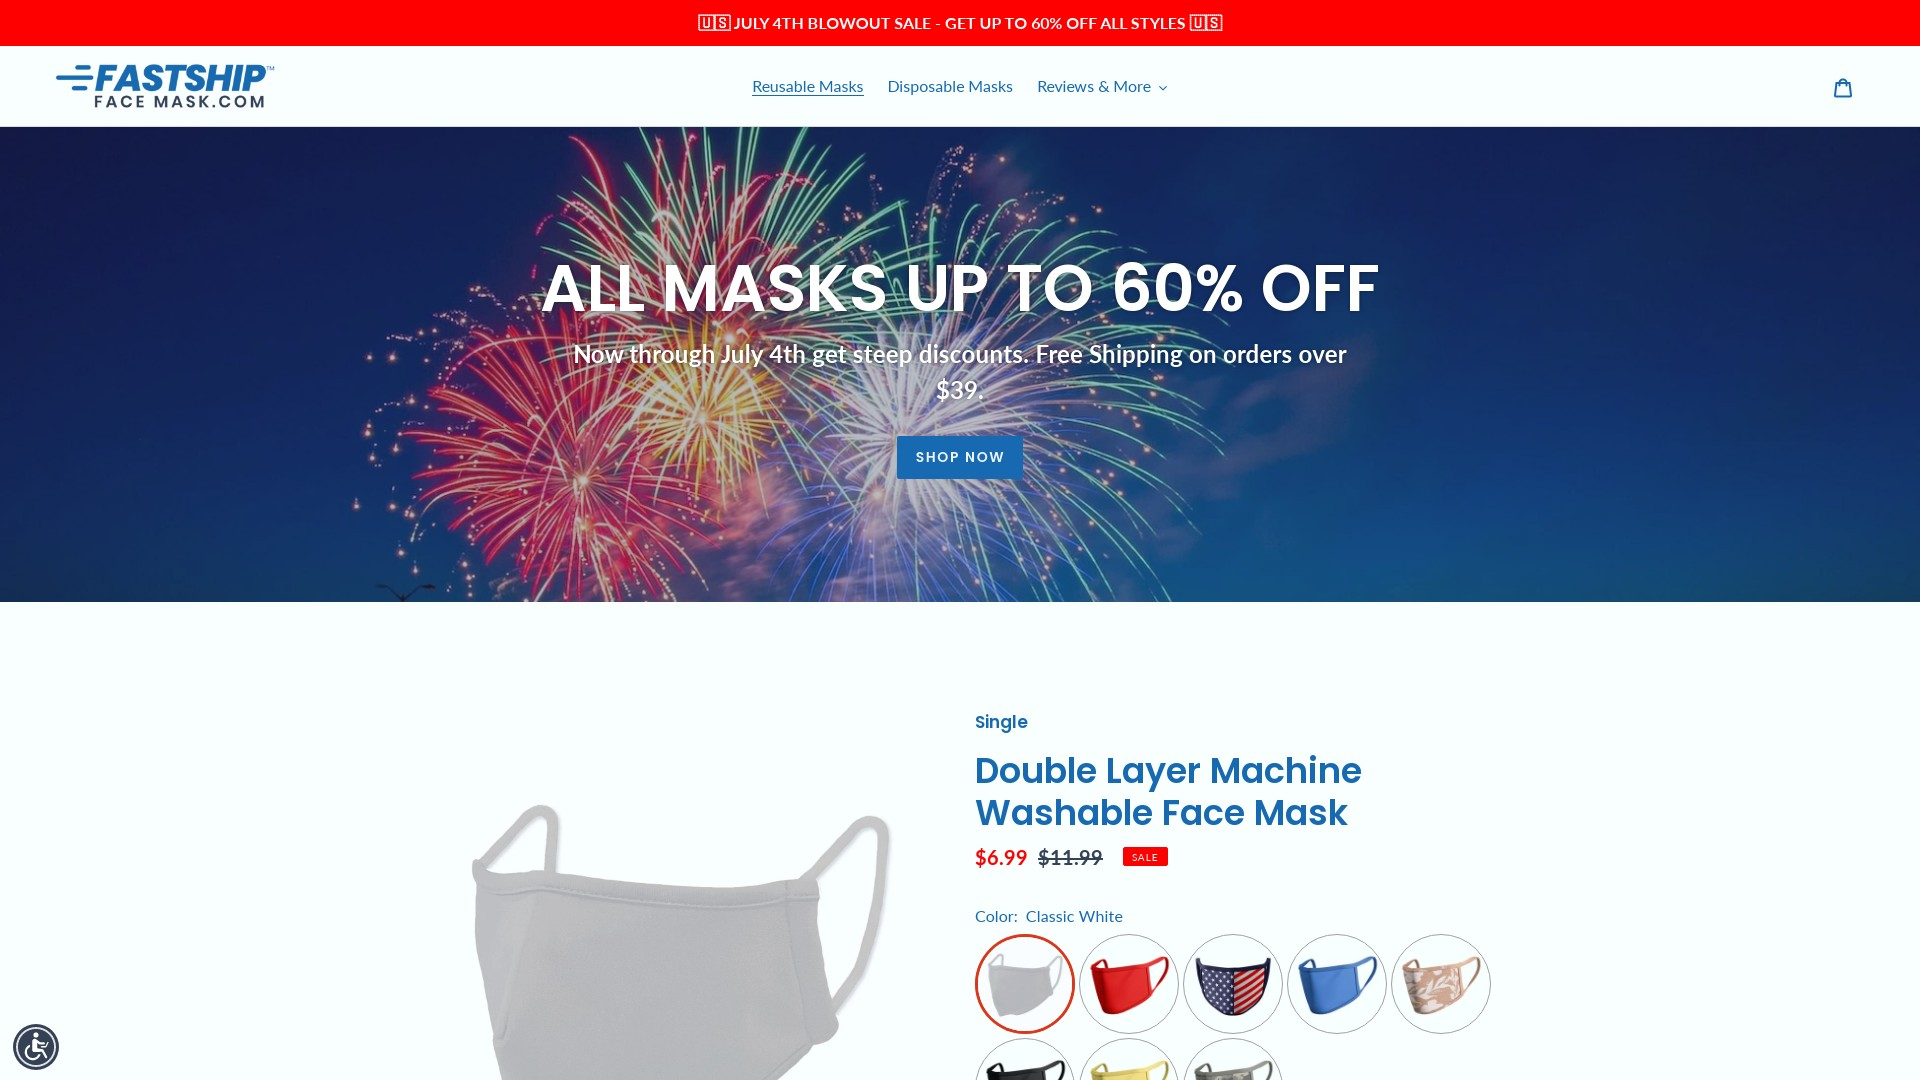 Is fastshipfacemask.com a Scam? Review of the Online Store